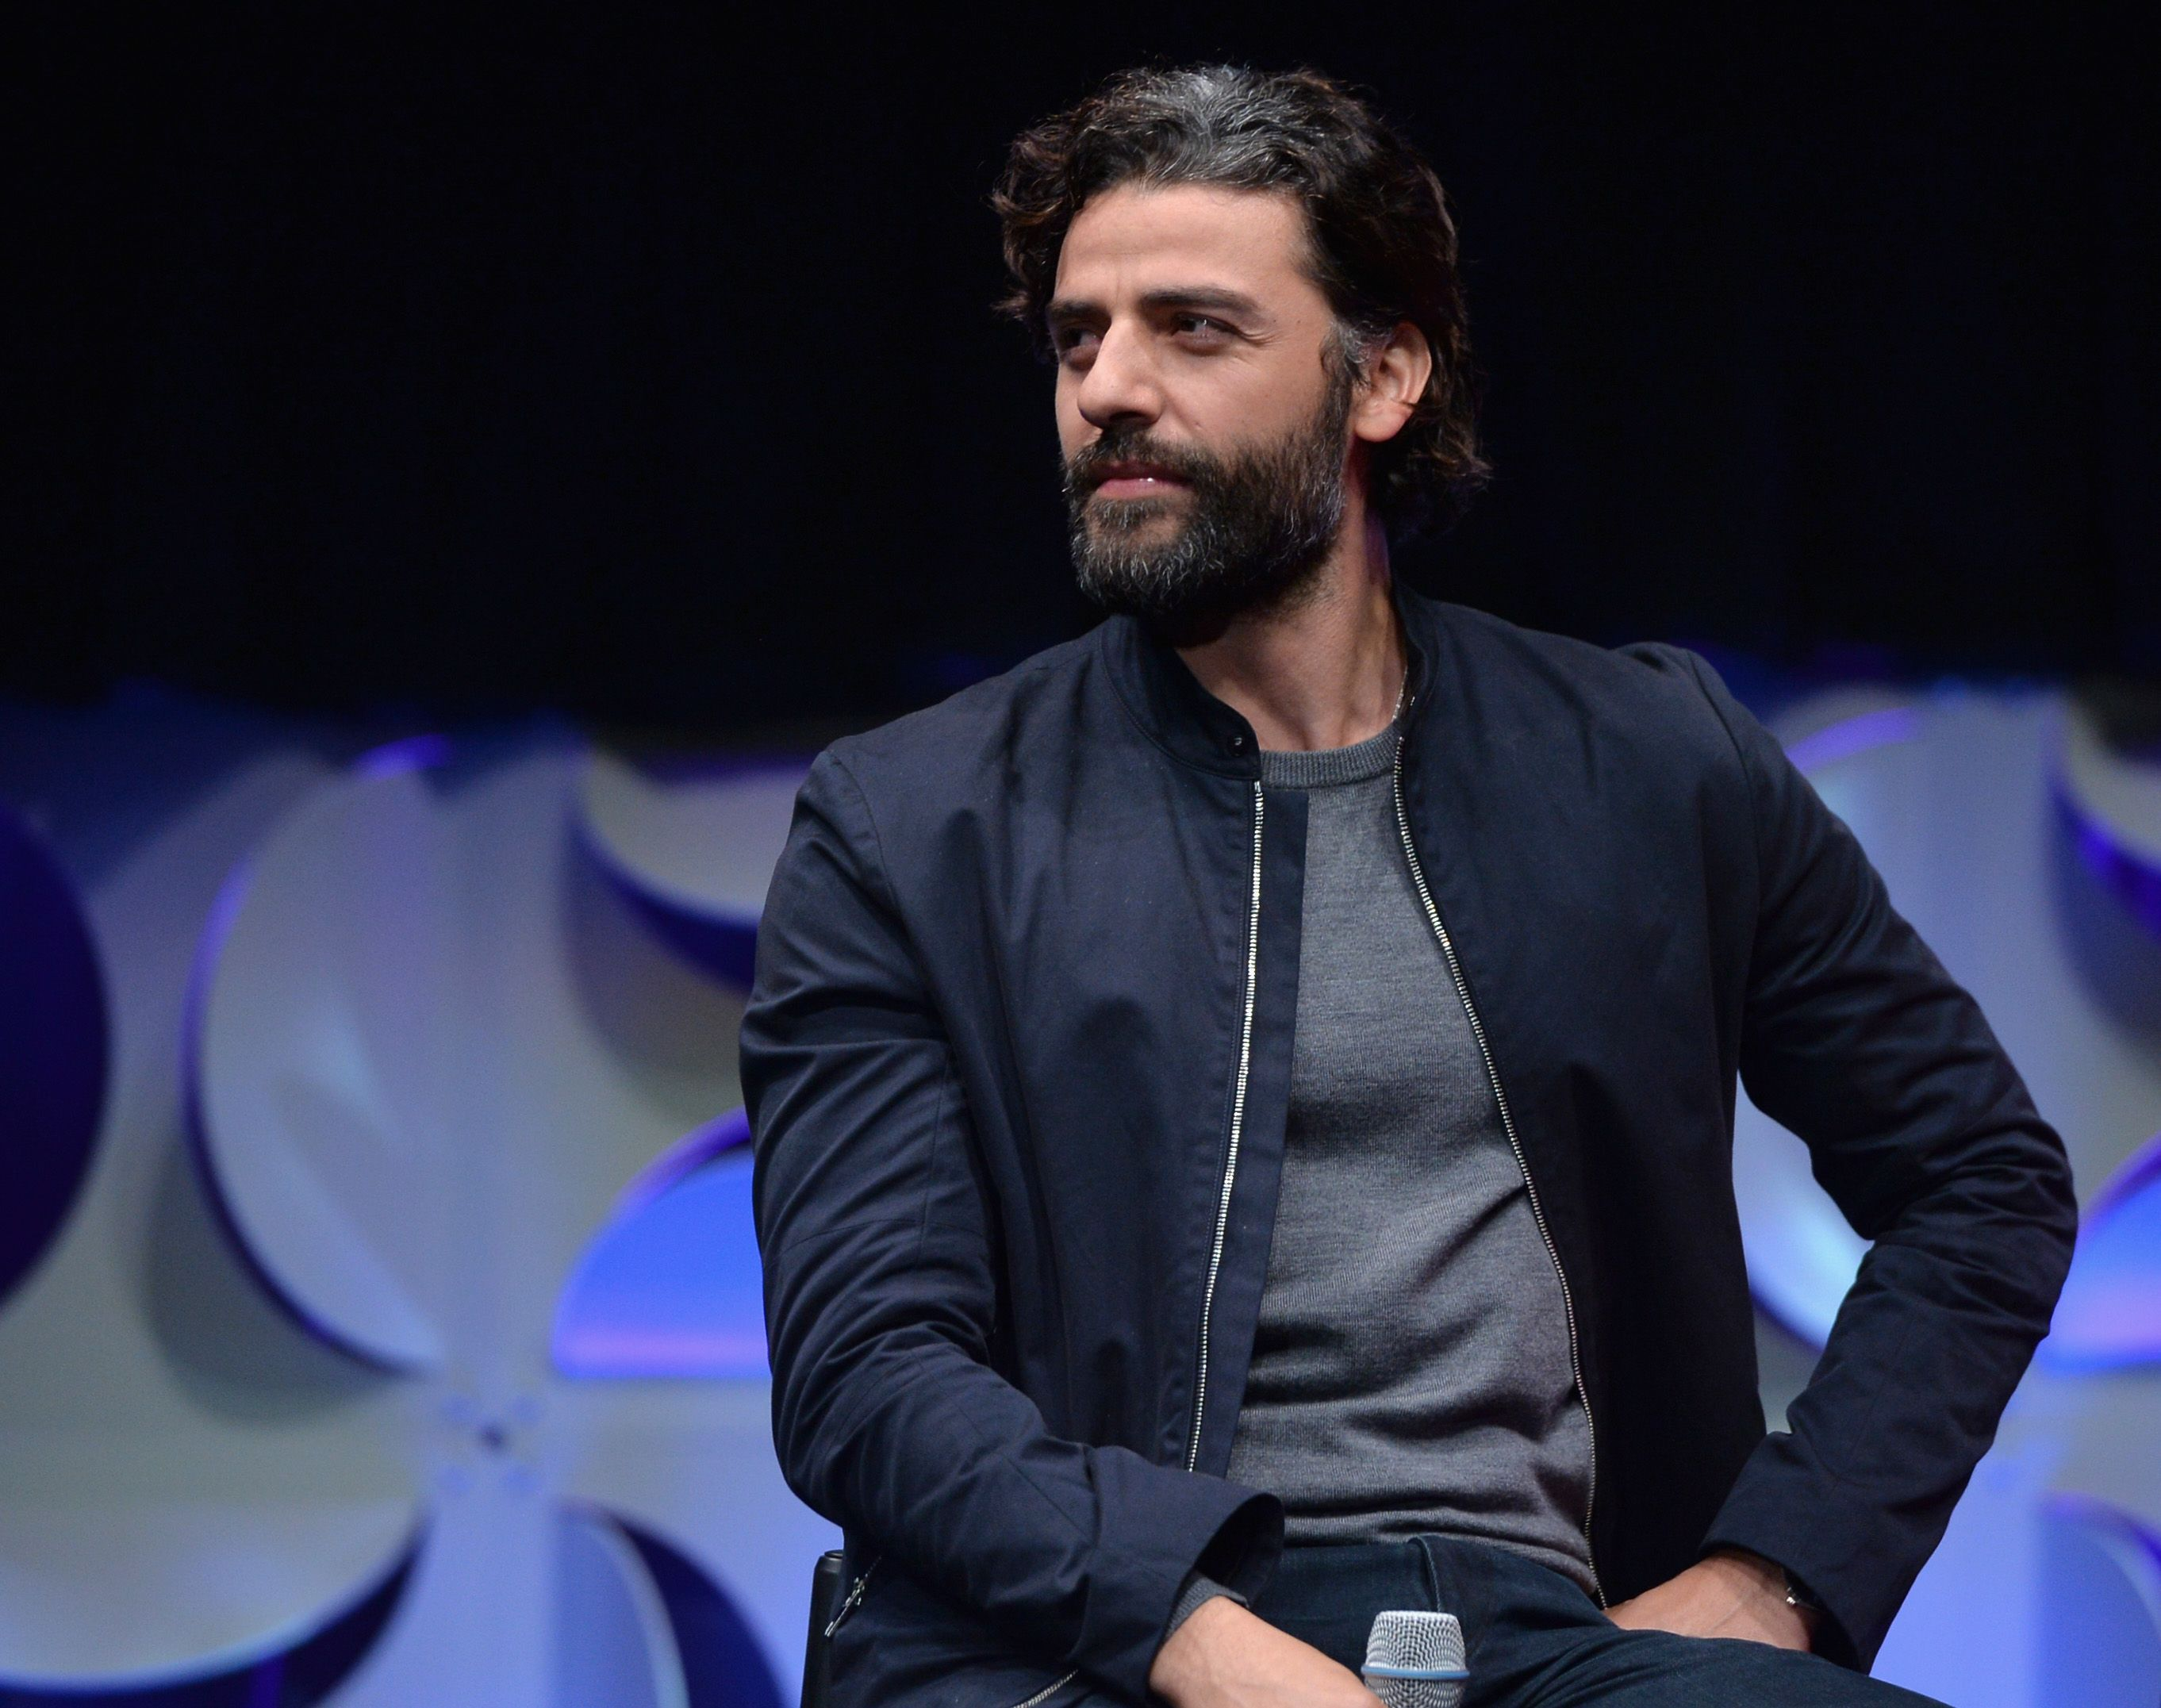 Oscar Isaac joins the cast of Denis Villeneuve's Dune